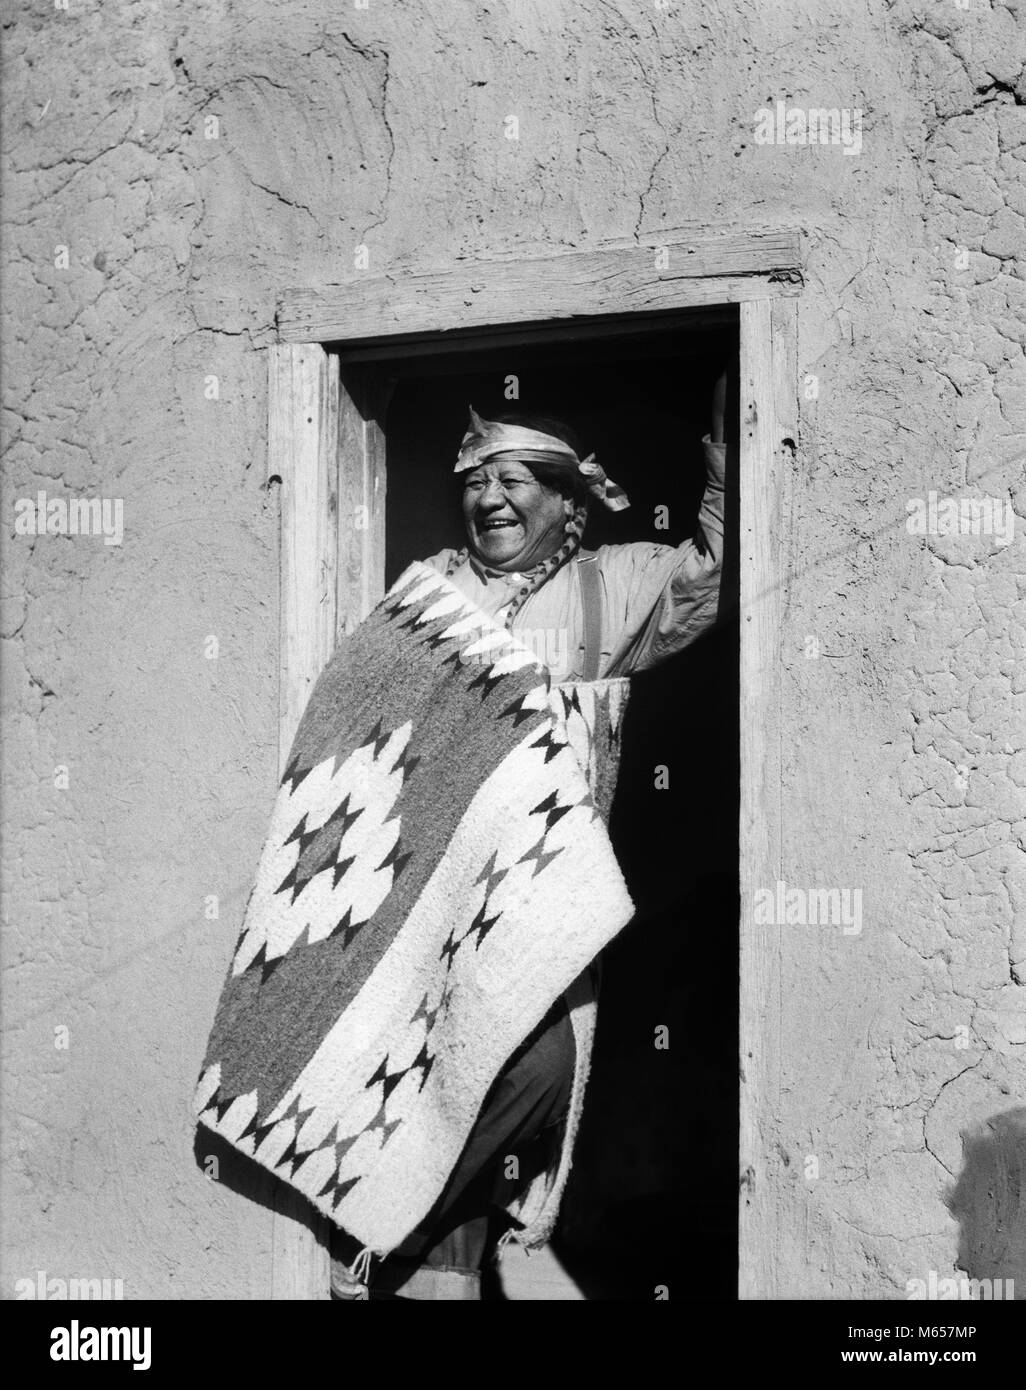 1930s SMILING NATIVE AMERICAN INDIAN MAN STANDING IN DOORWAY WEARING TYPICAL COSTUME SAN ILDEFONSO PUEBLO NEW MEXICO - Stock Image